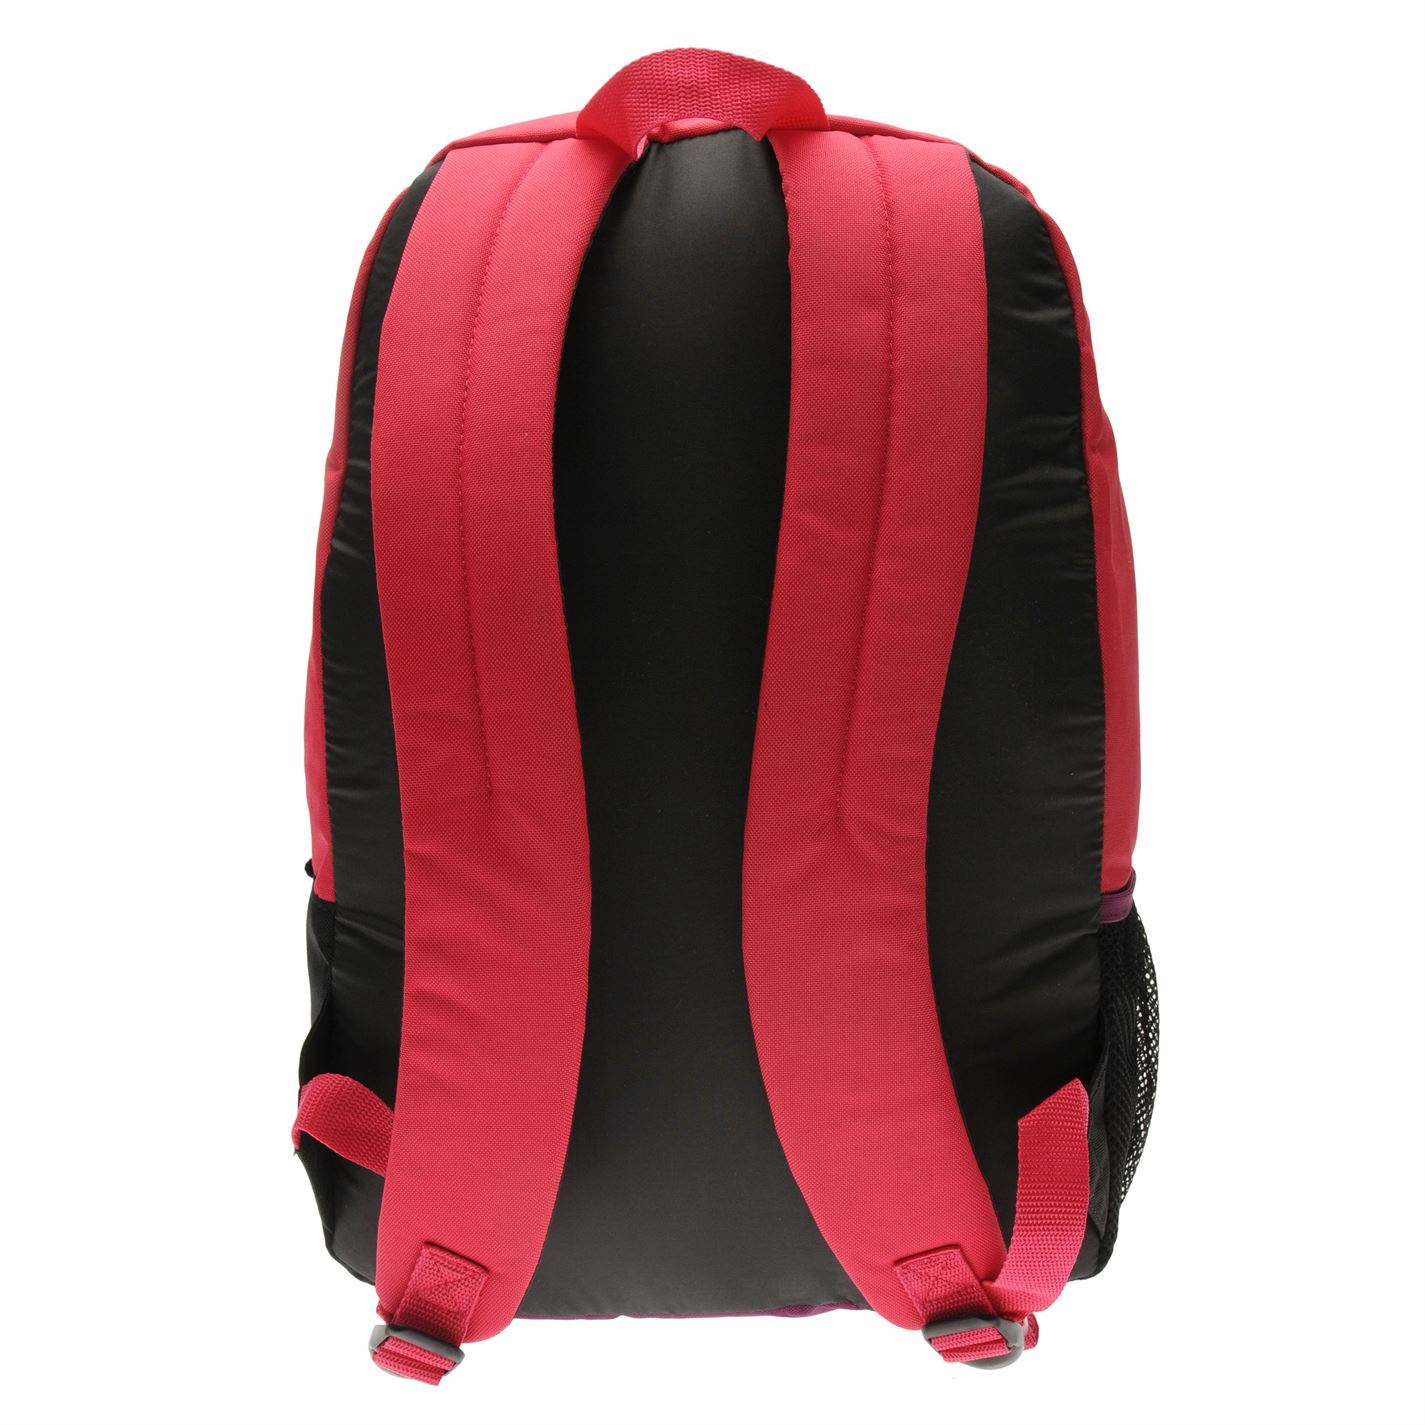 ... Puma Back To School Backpack with Pencil Case Purple School Bag Holdall  Rucksack b6642e6472a95